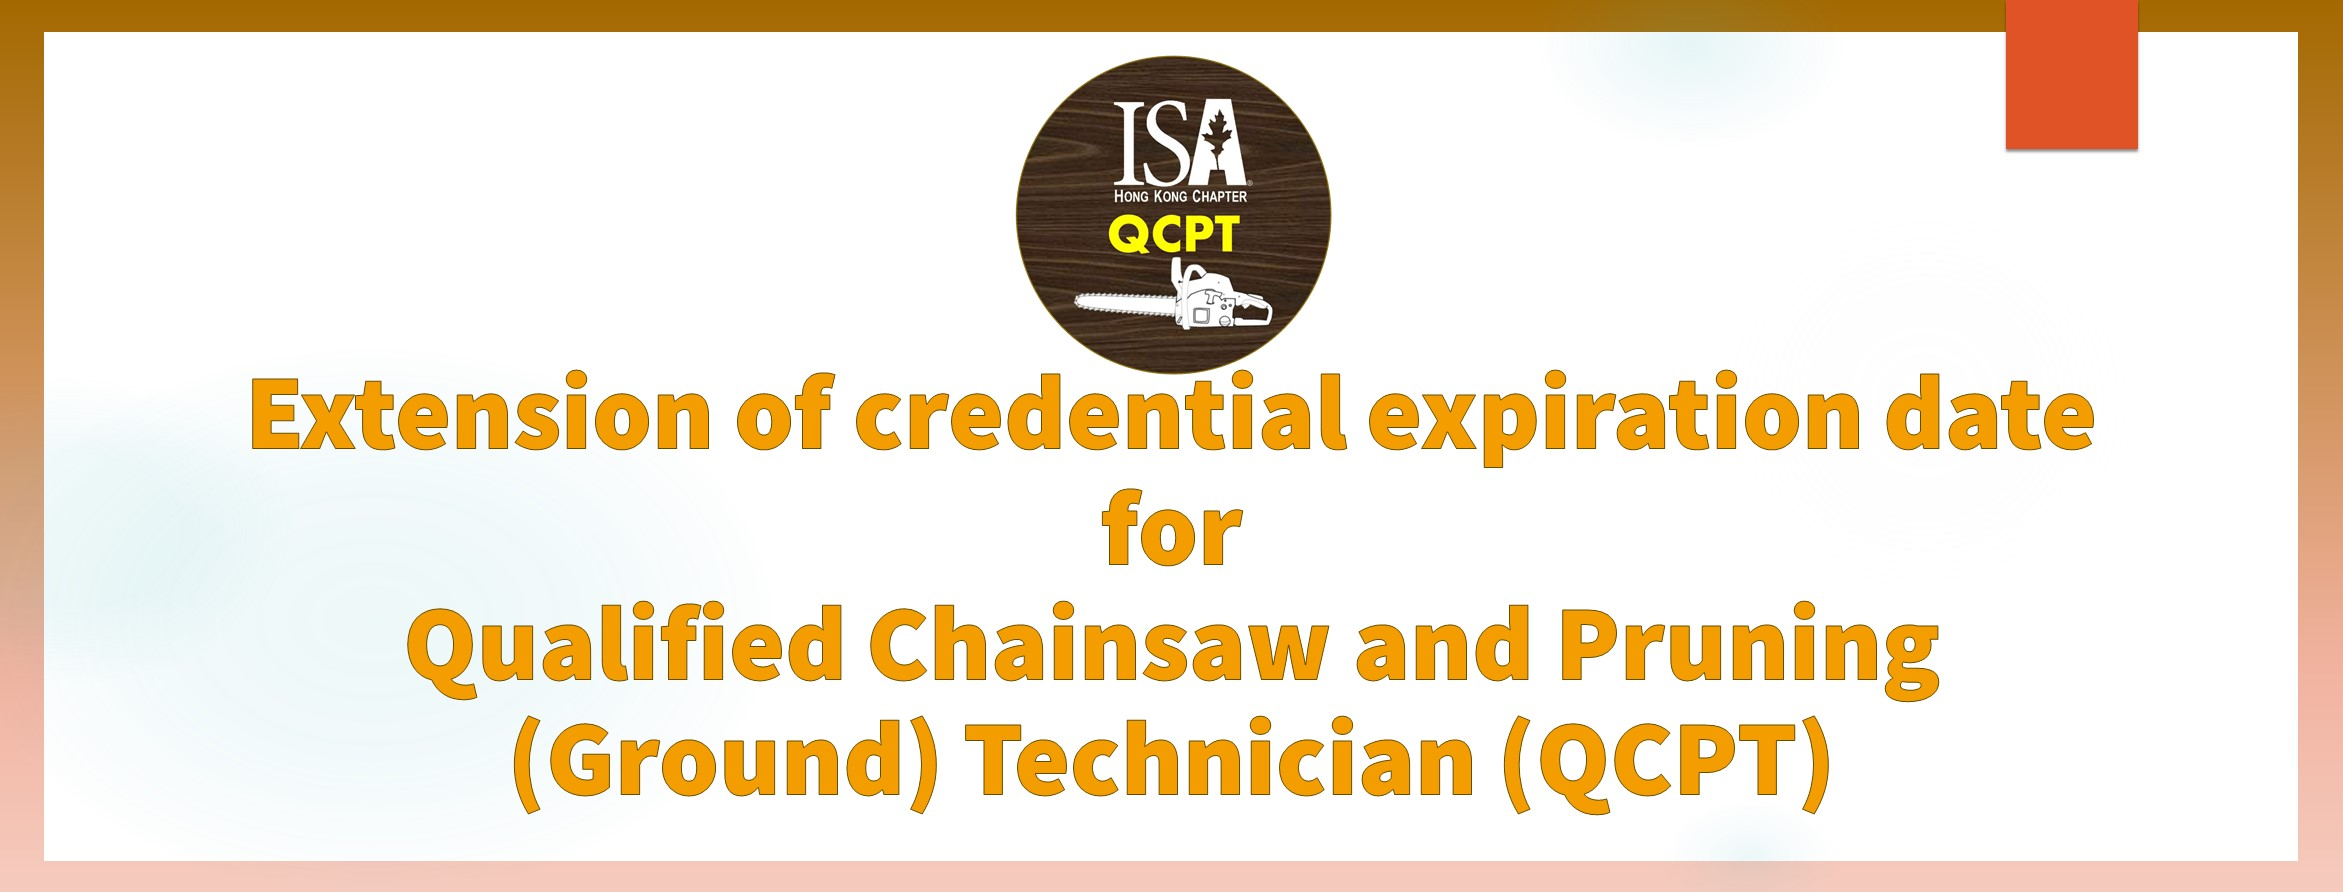 Extension of credential expiration date for Qualified Chainsaw & Pruning (Ground) Technician (QCPT)